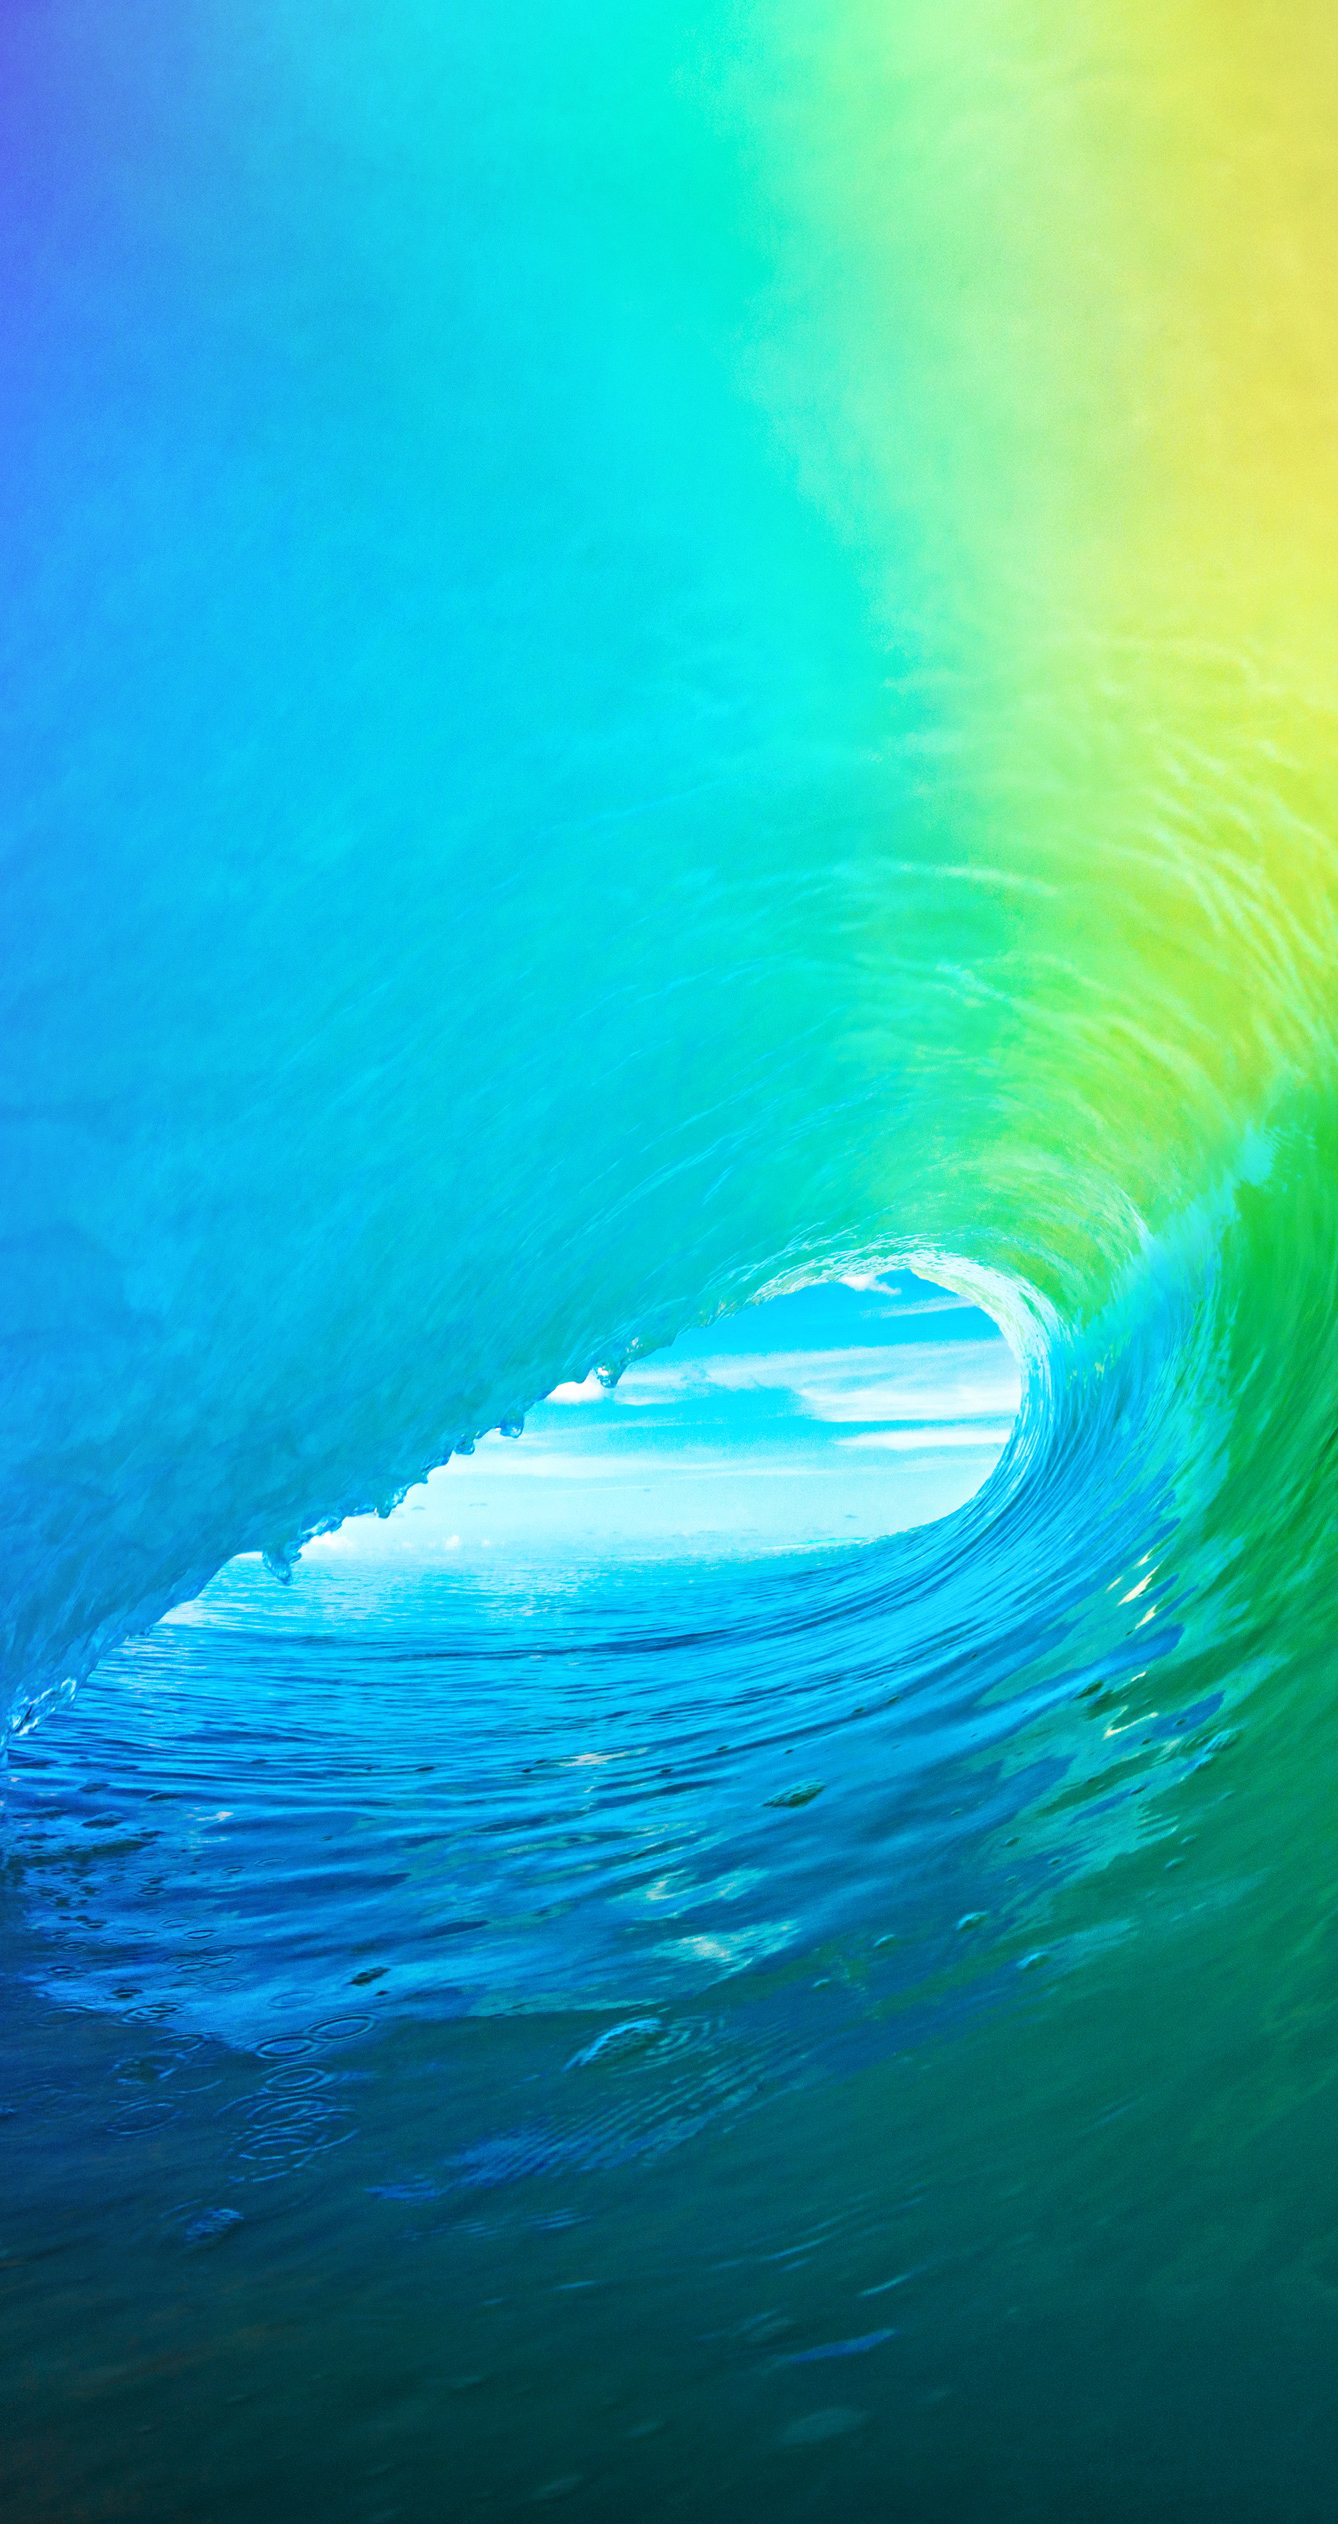 Iphone X Default Wallpaper Download The Colored Wave Default Ios 9 Wallpaper